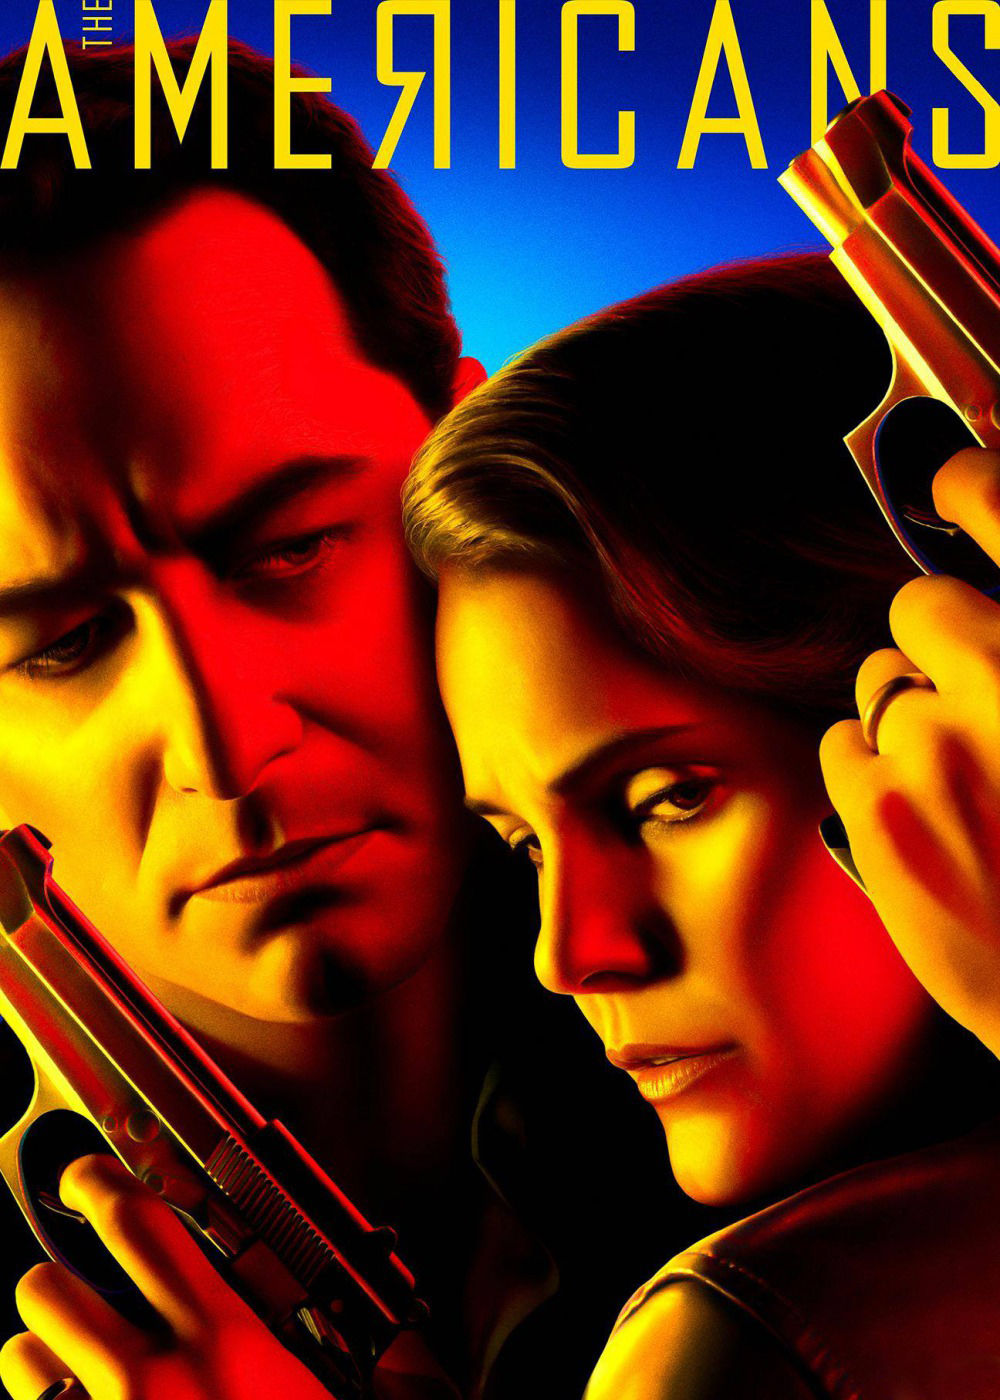 The Americans cover